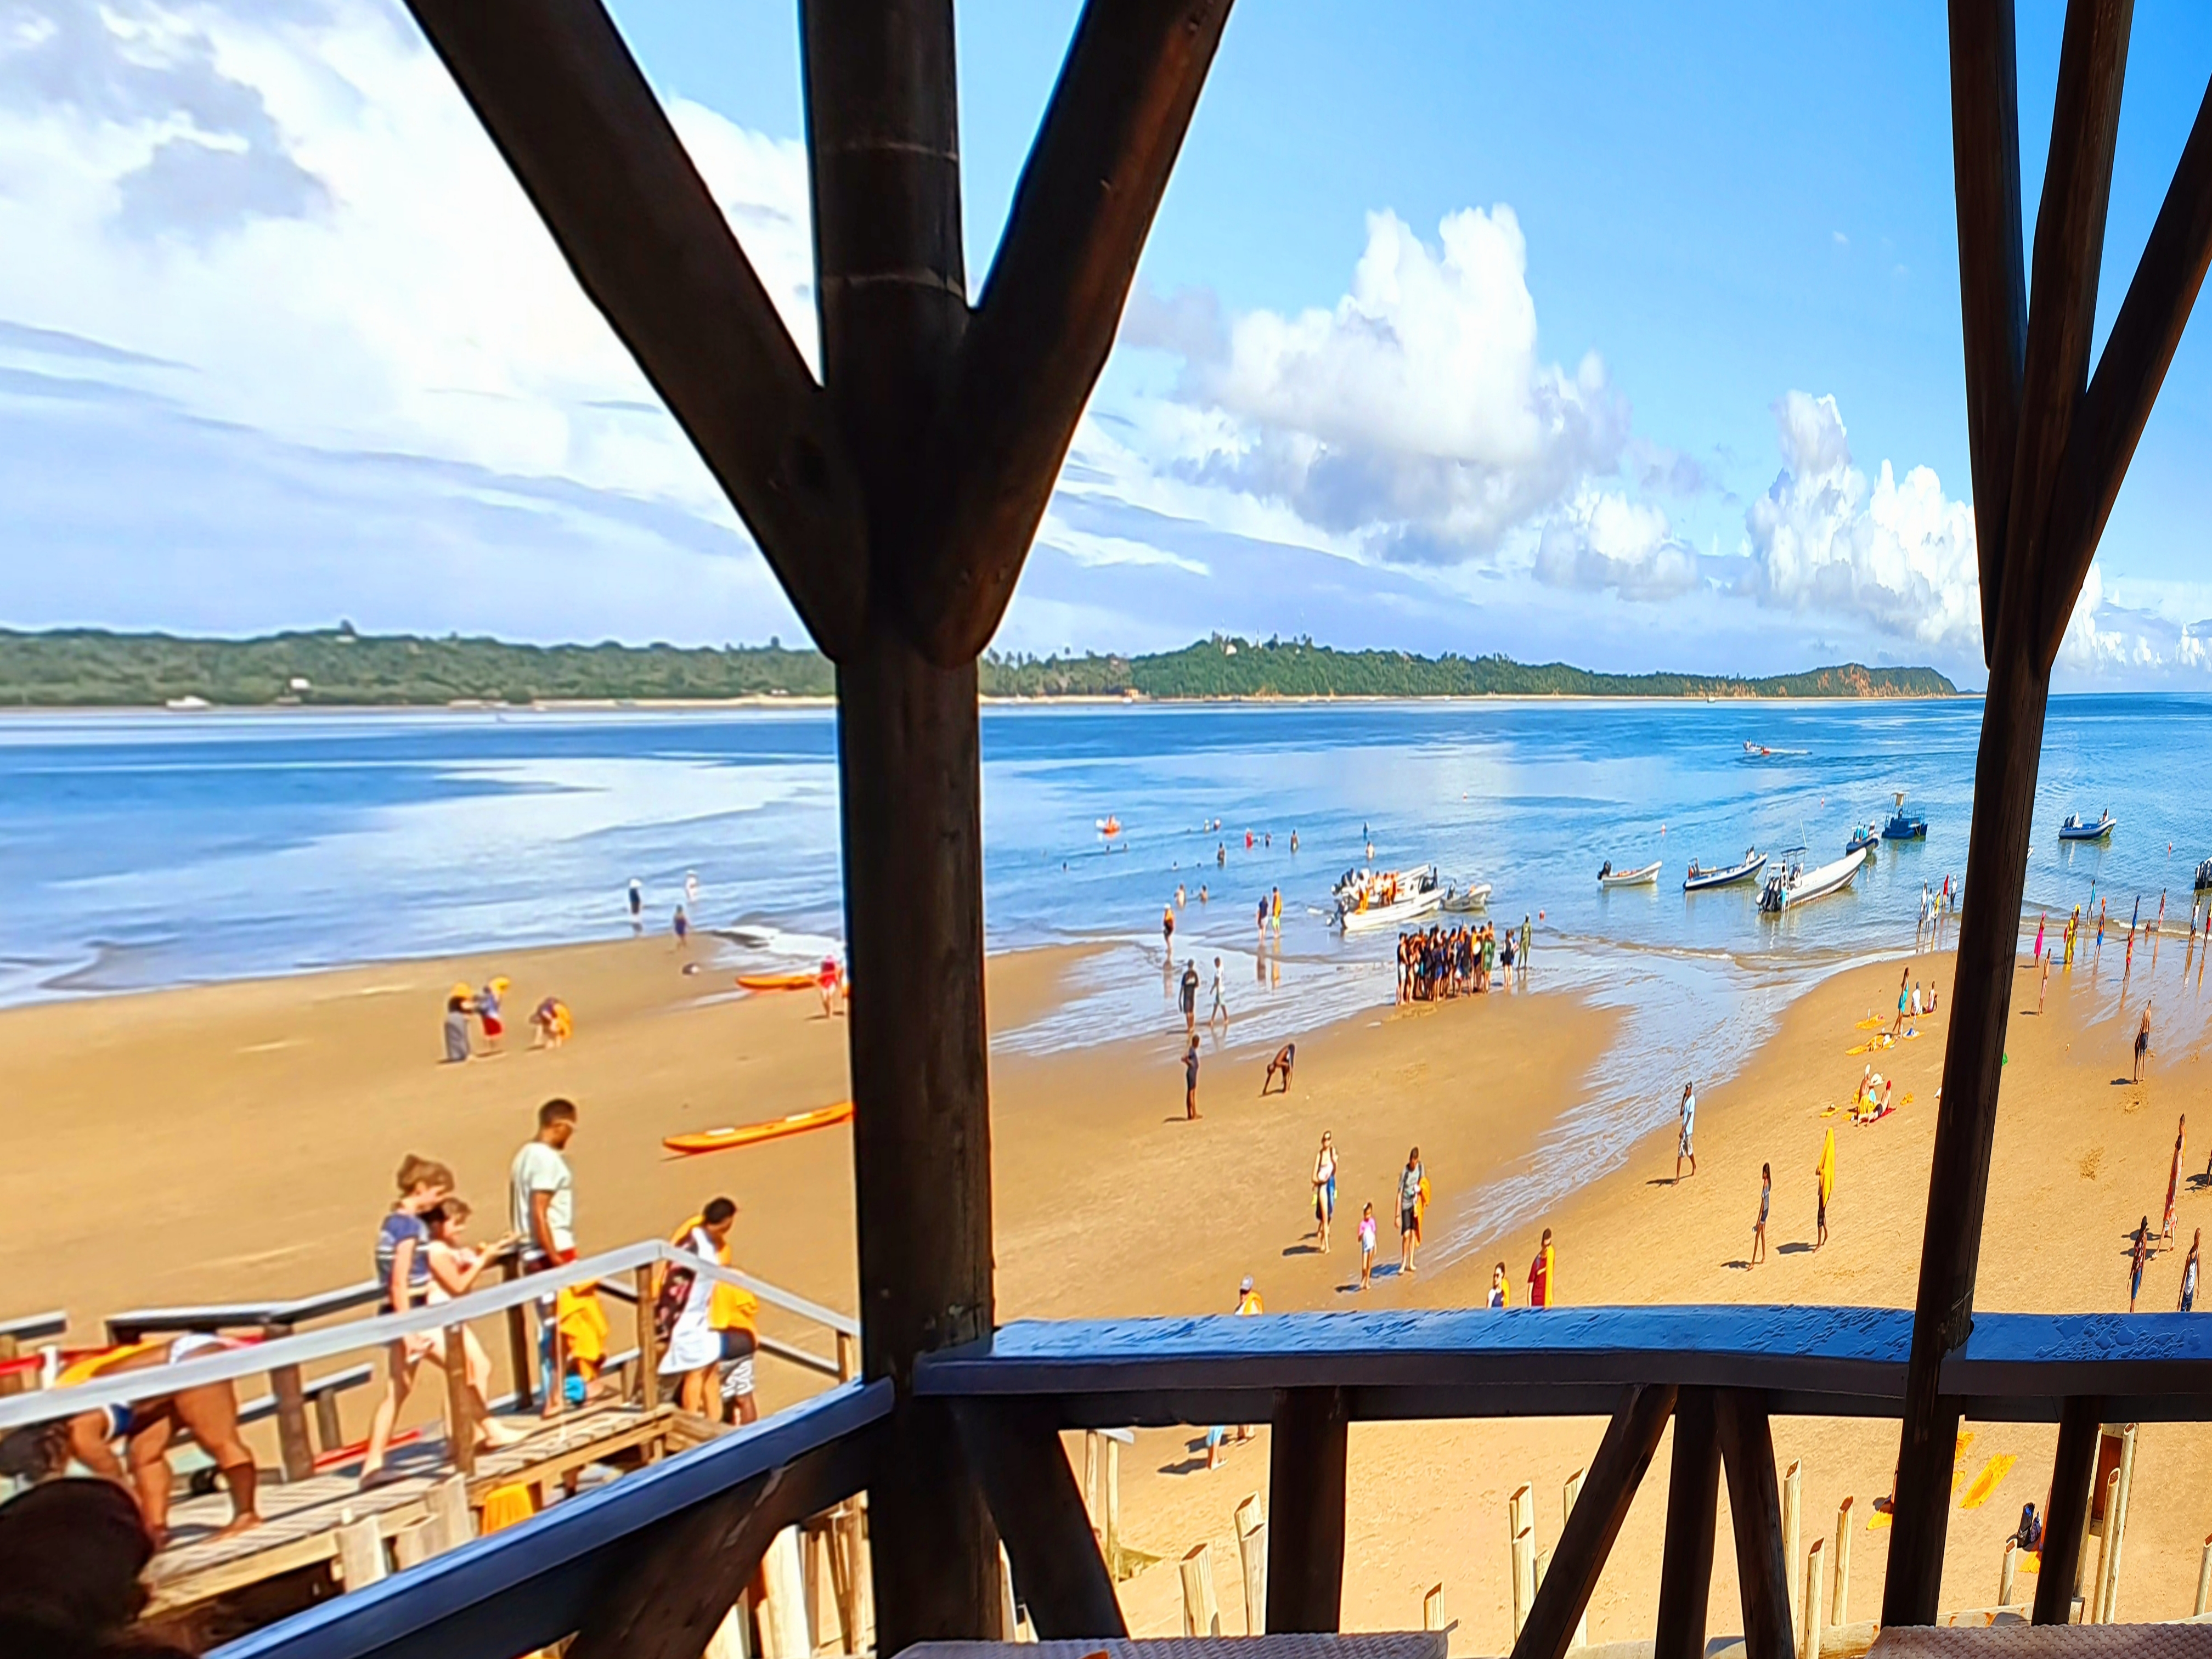 Cruise to Portuguese Island from Durban 2019/2020